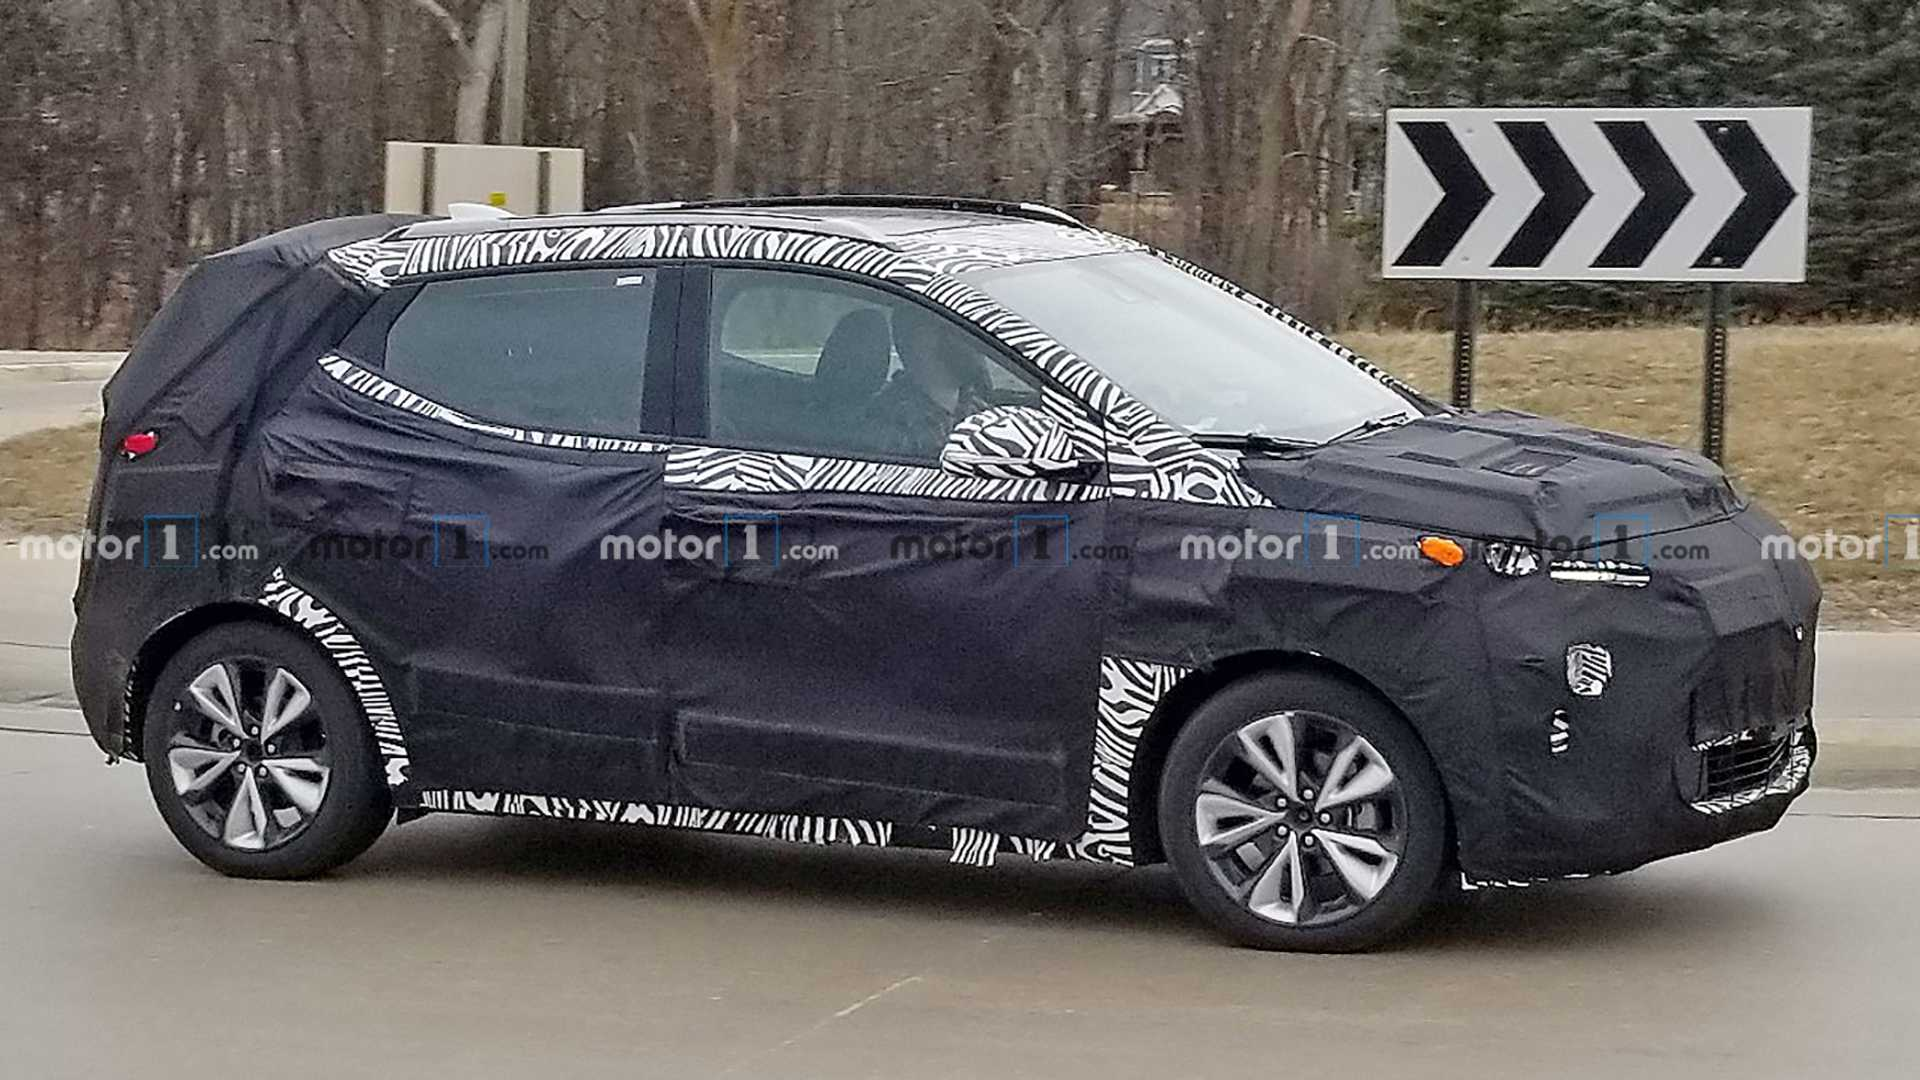 Chevrolet Bolt Euv Crossover Spied For The First Time